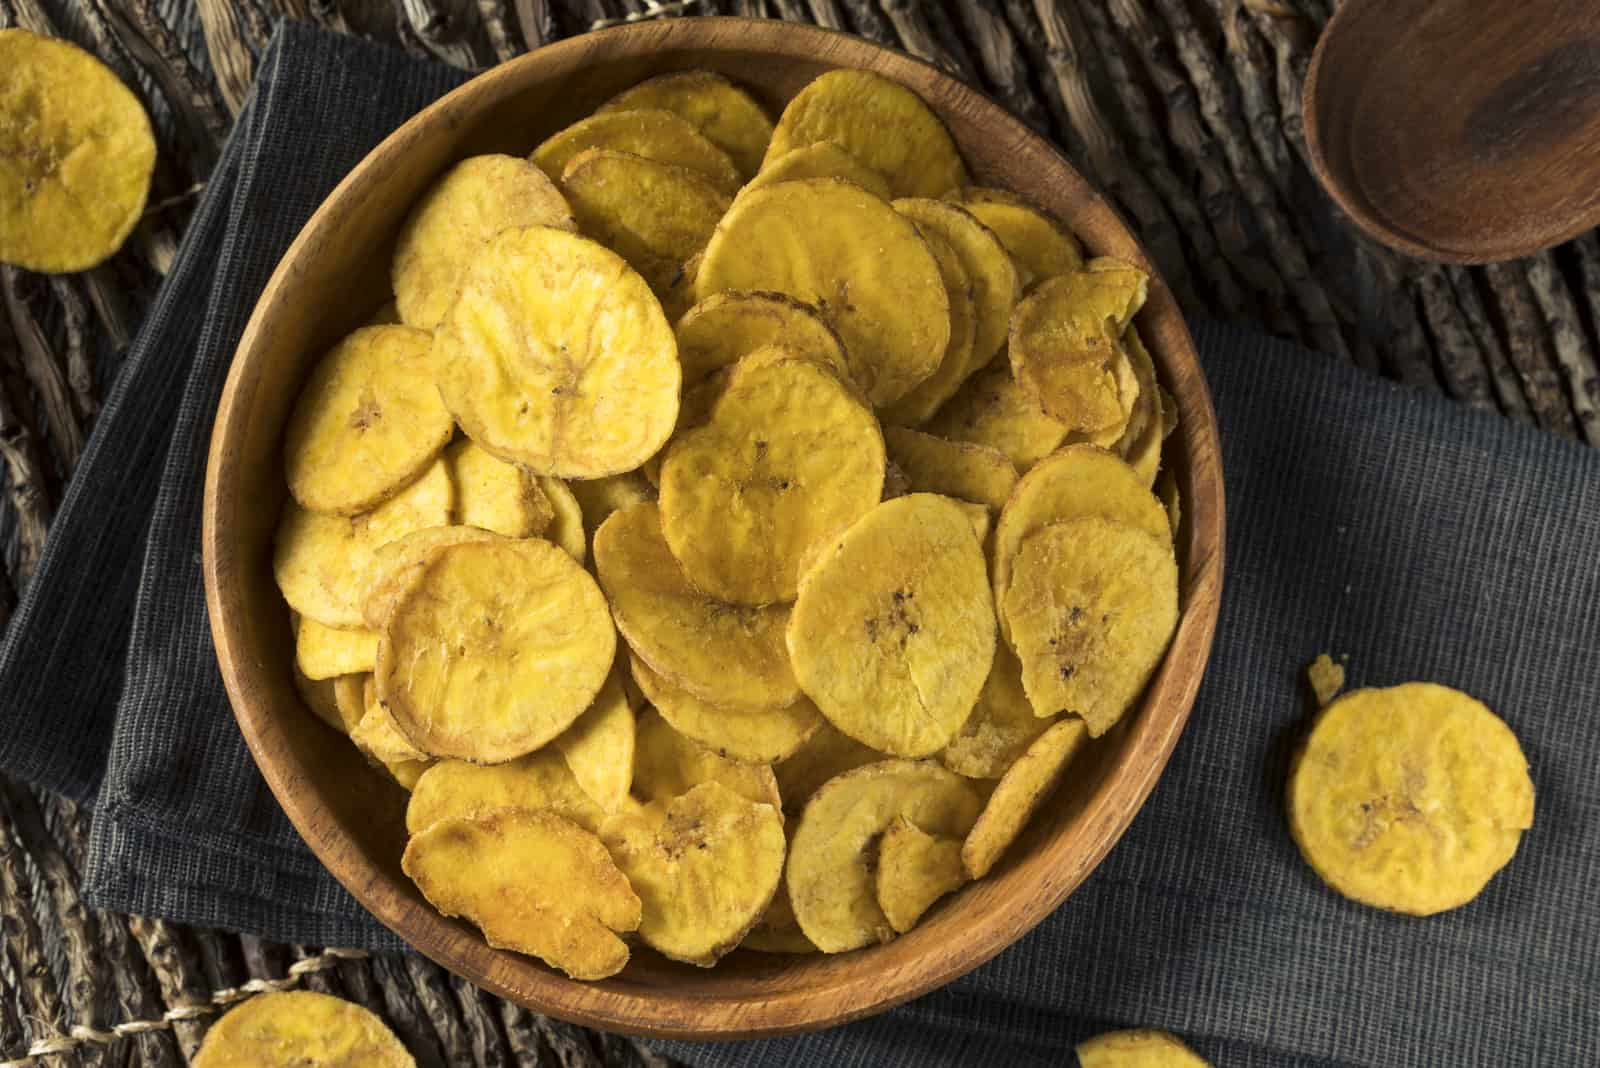 dried plantain in a bowl